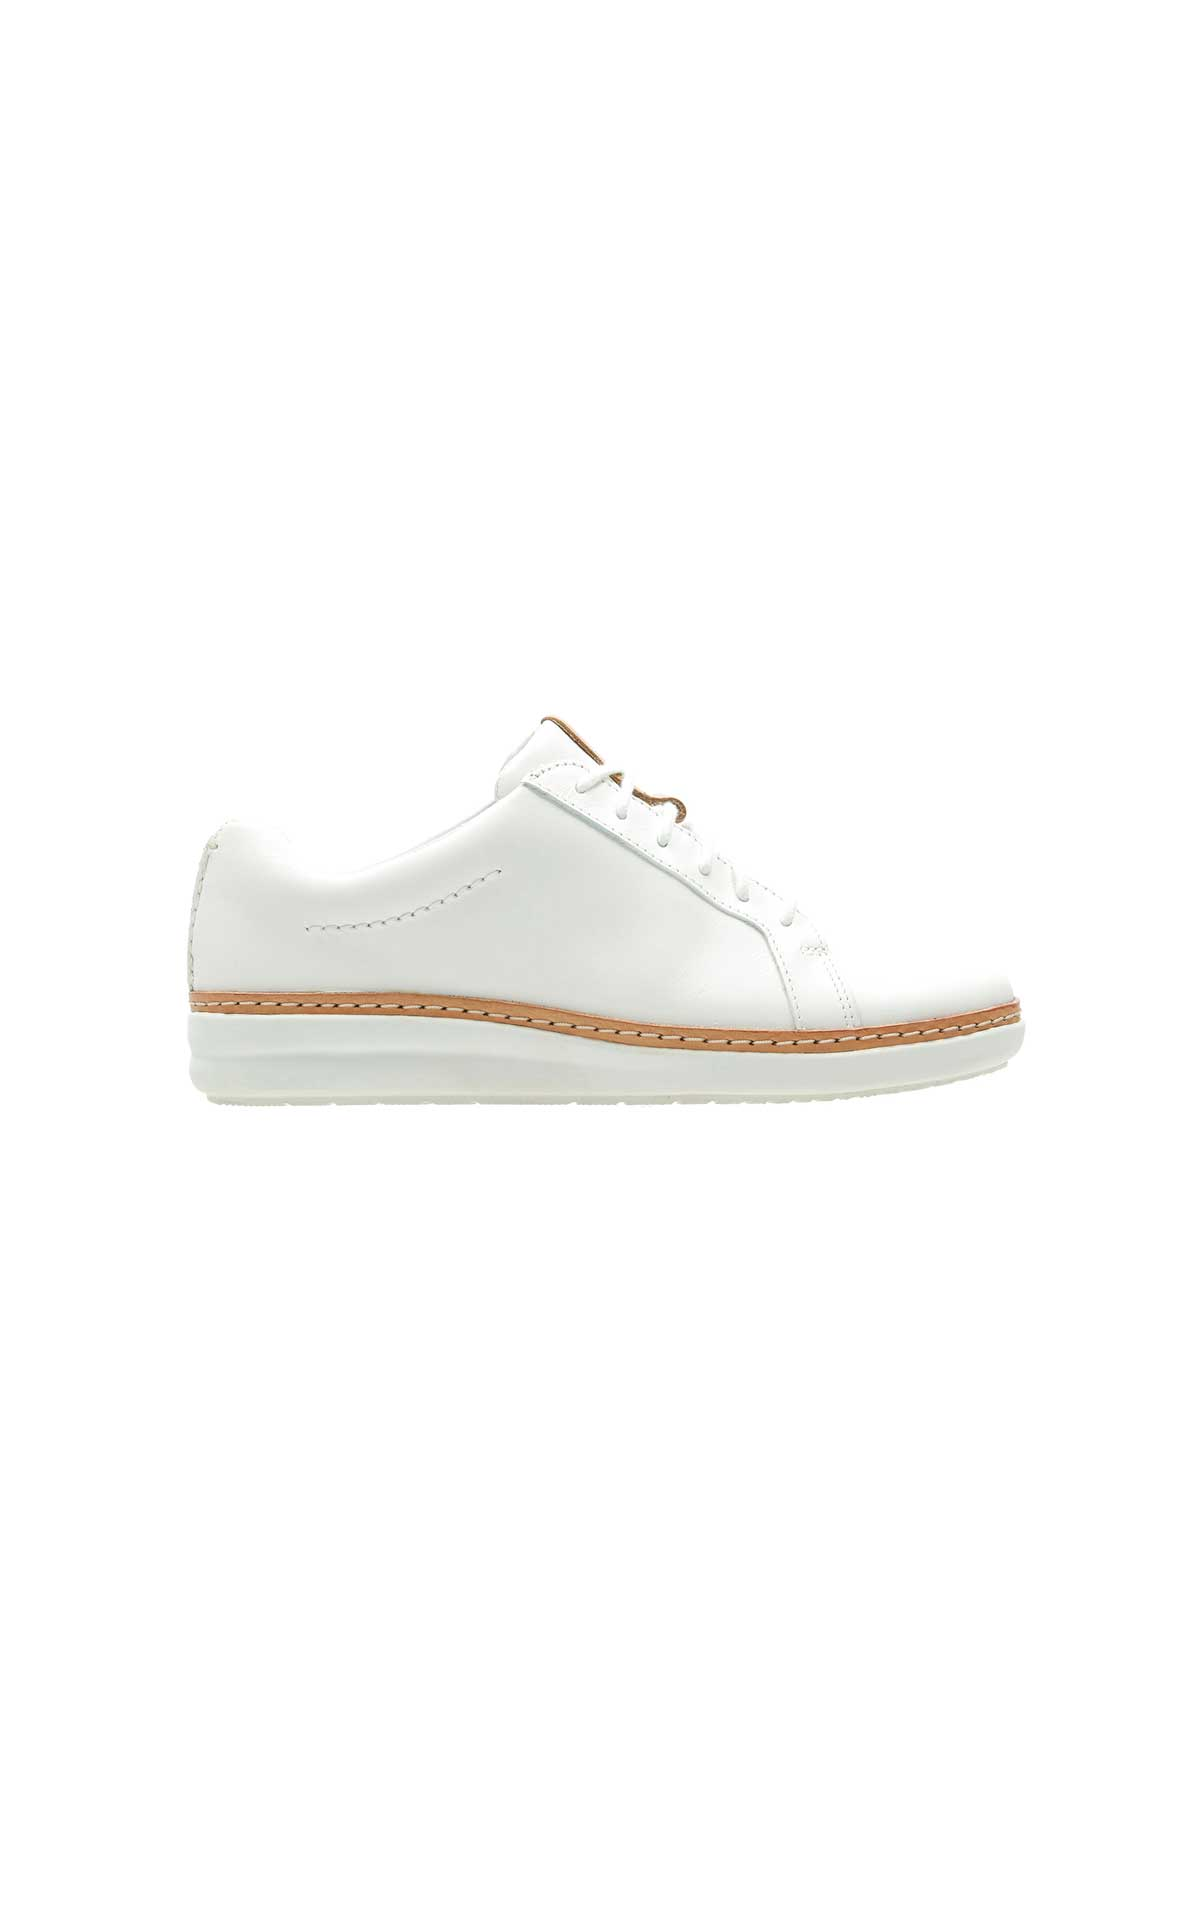 Clarks Amberlee rosa at the Bicester Village Shopping Collection